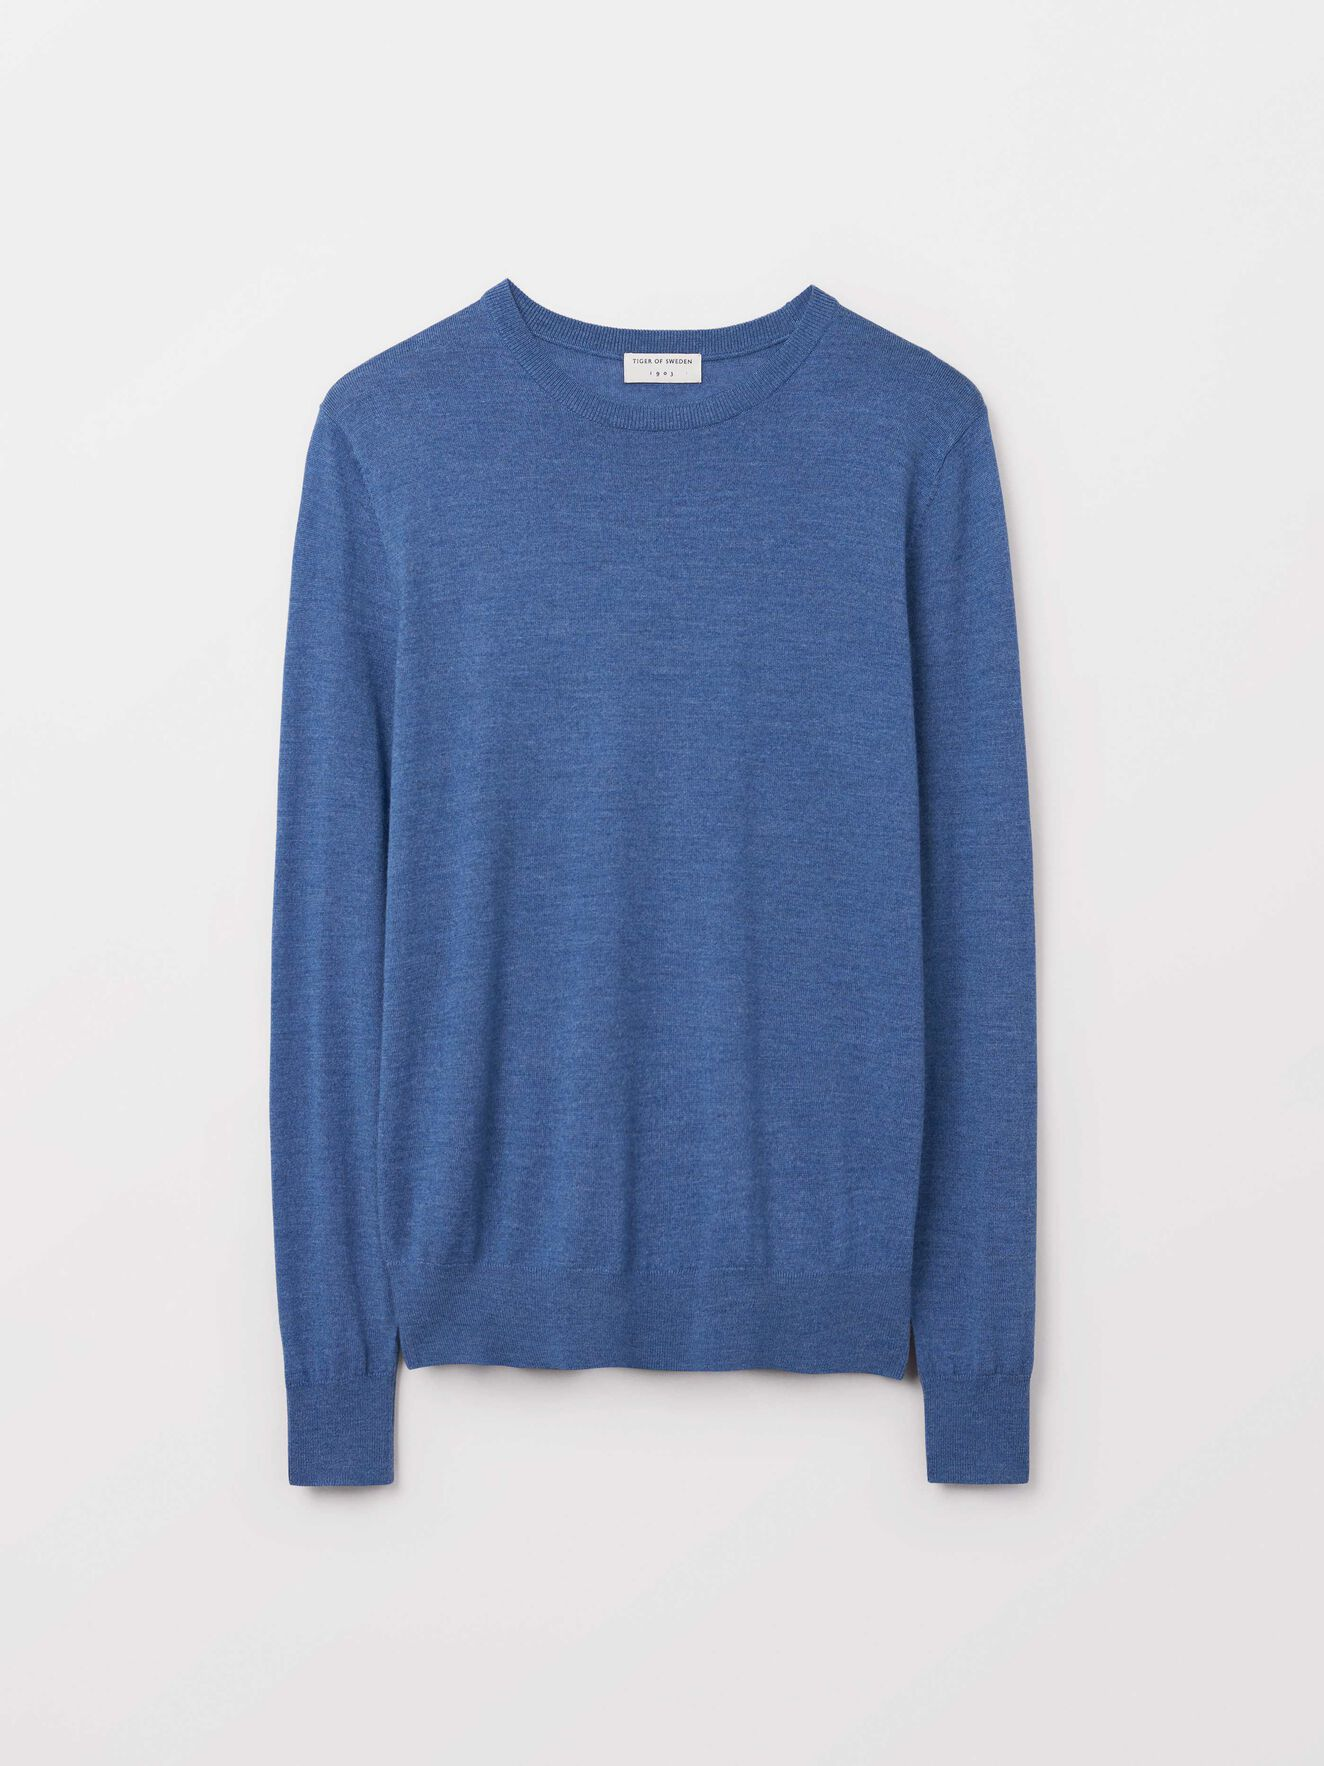 Nichols Pullover in Soft blue from Tiger of Sweden